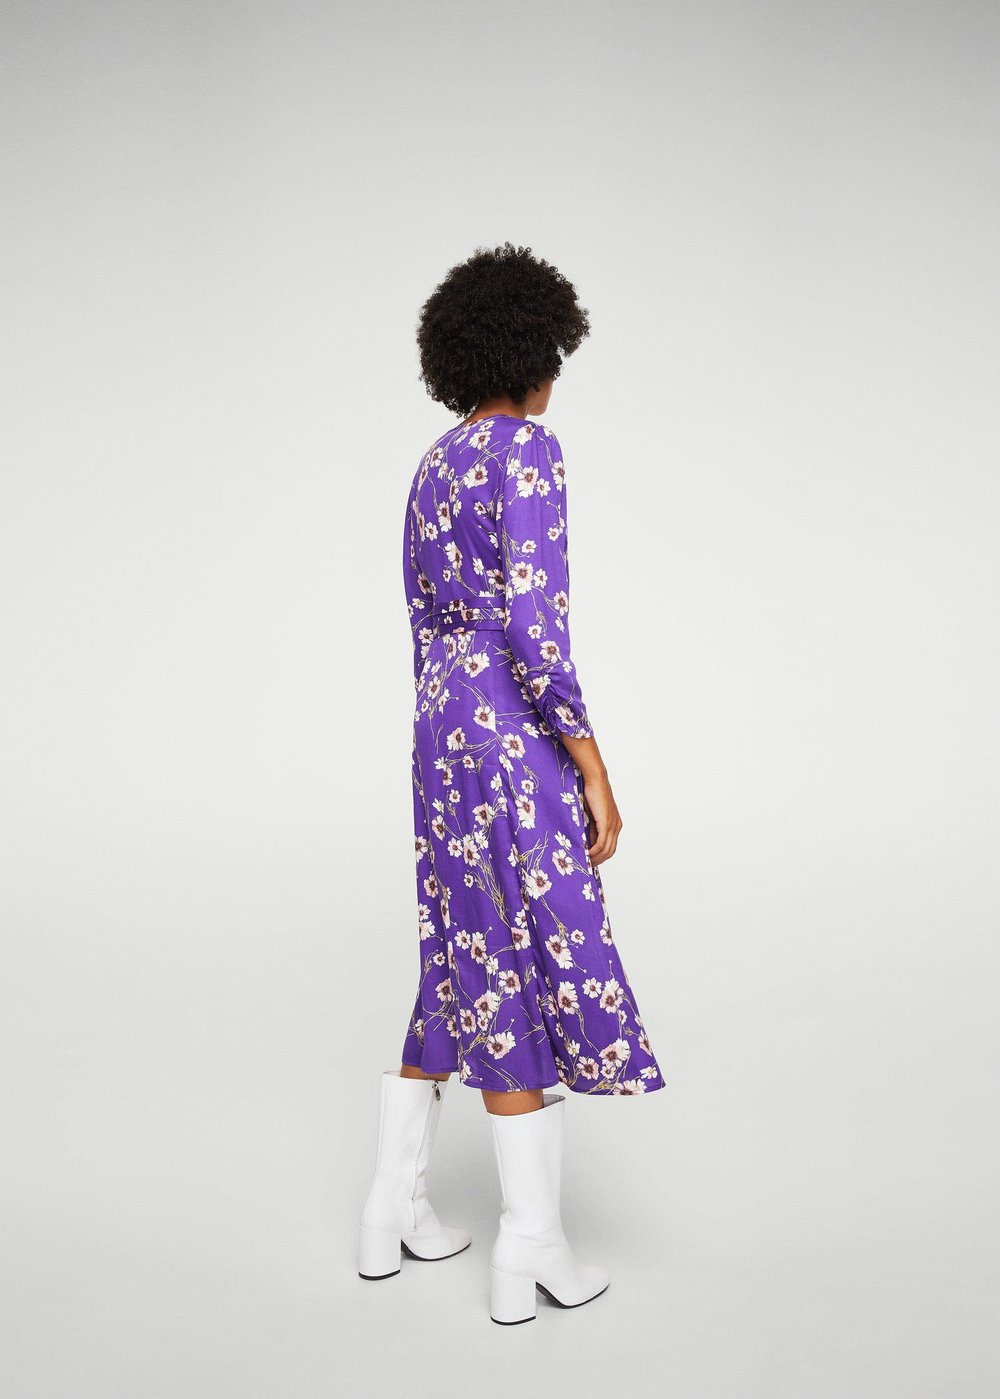 mango-Lilac-Floral-Pattern-Dress (1).jpeg